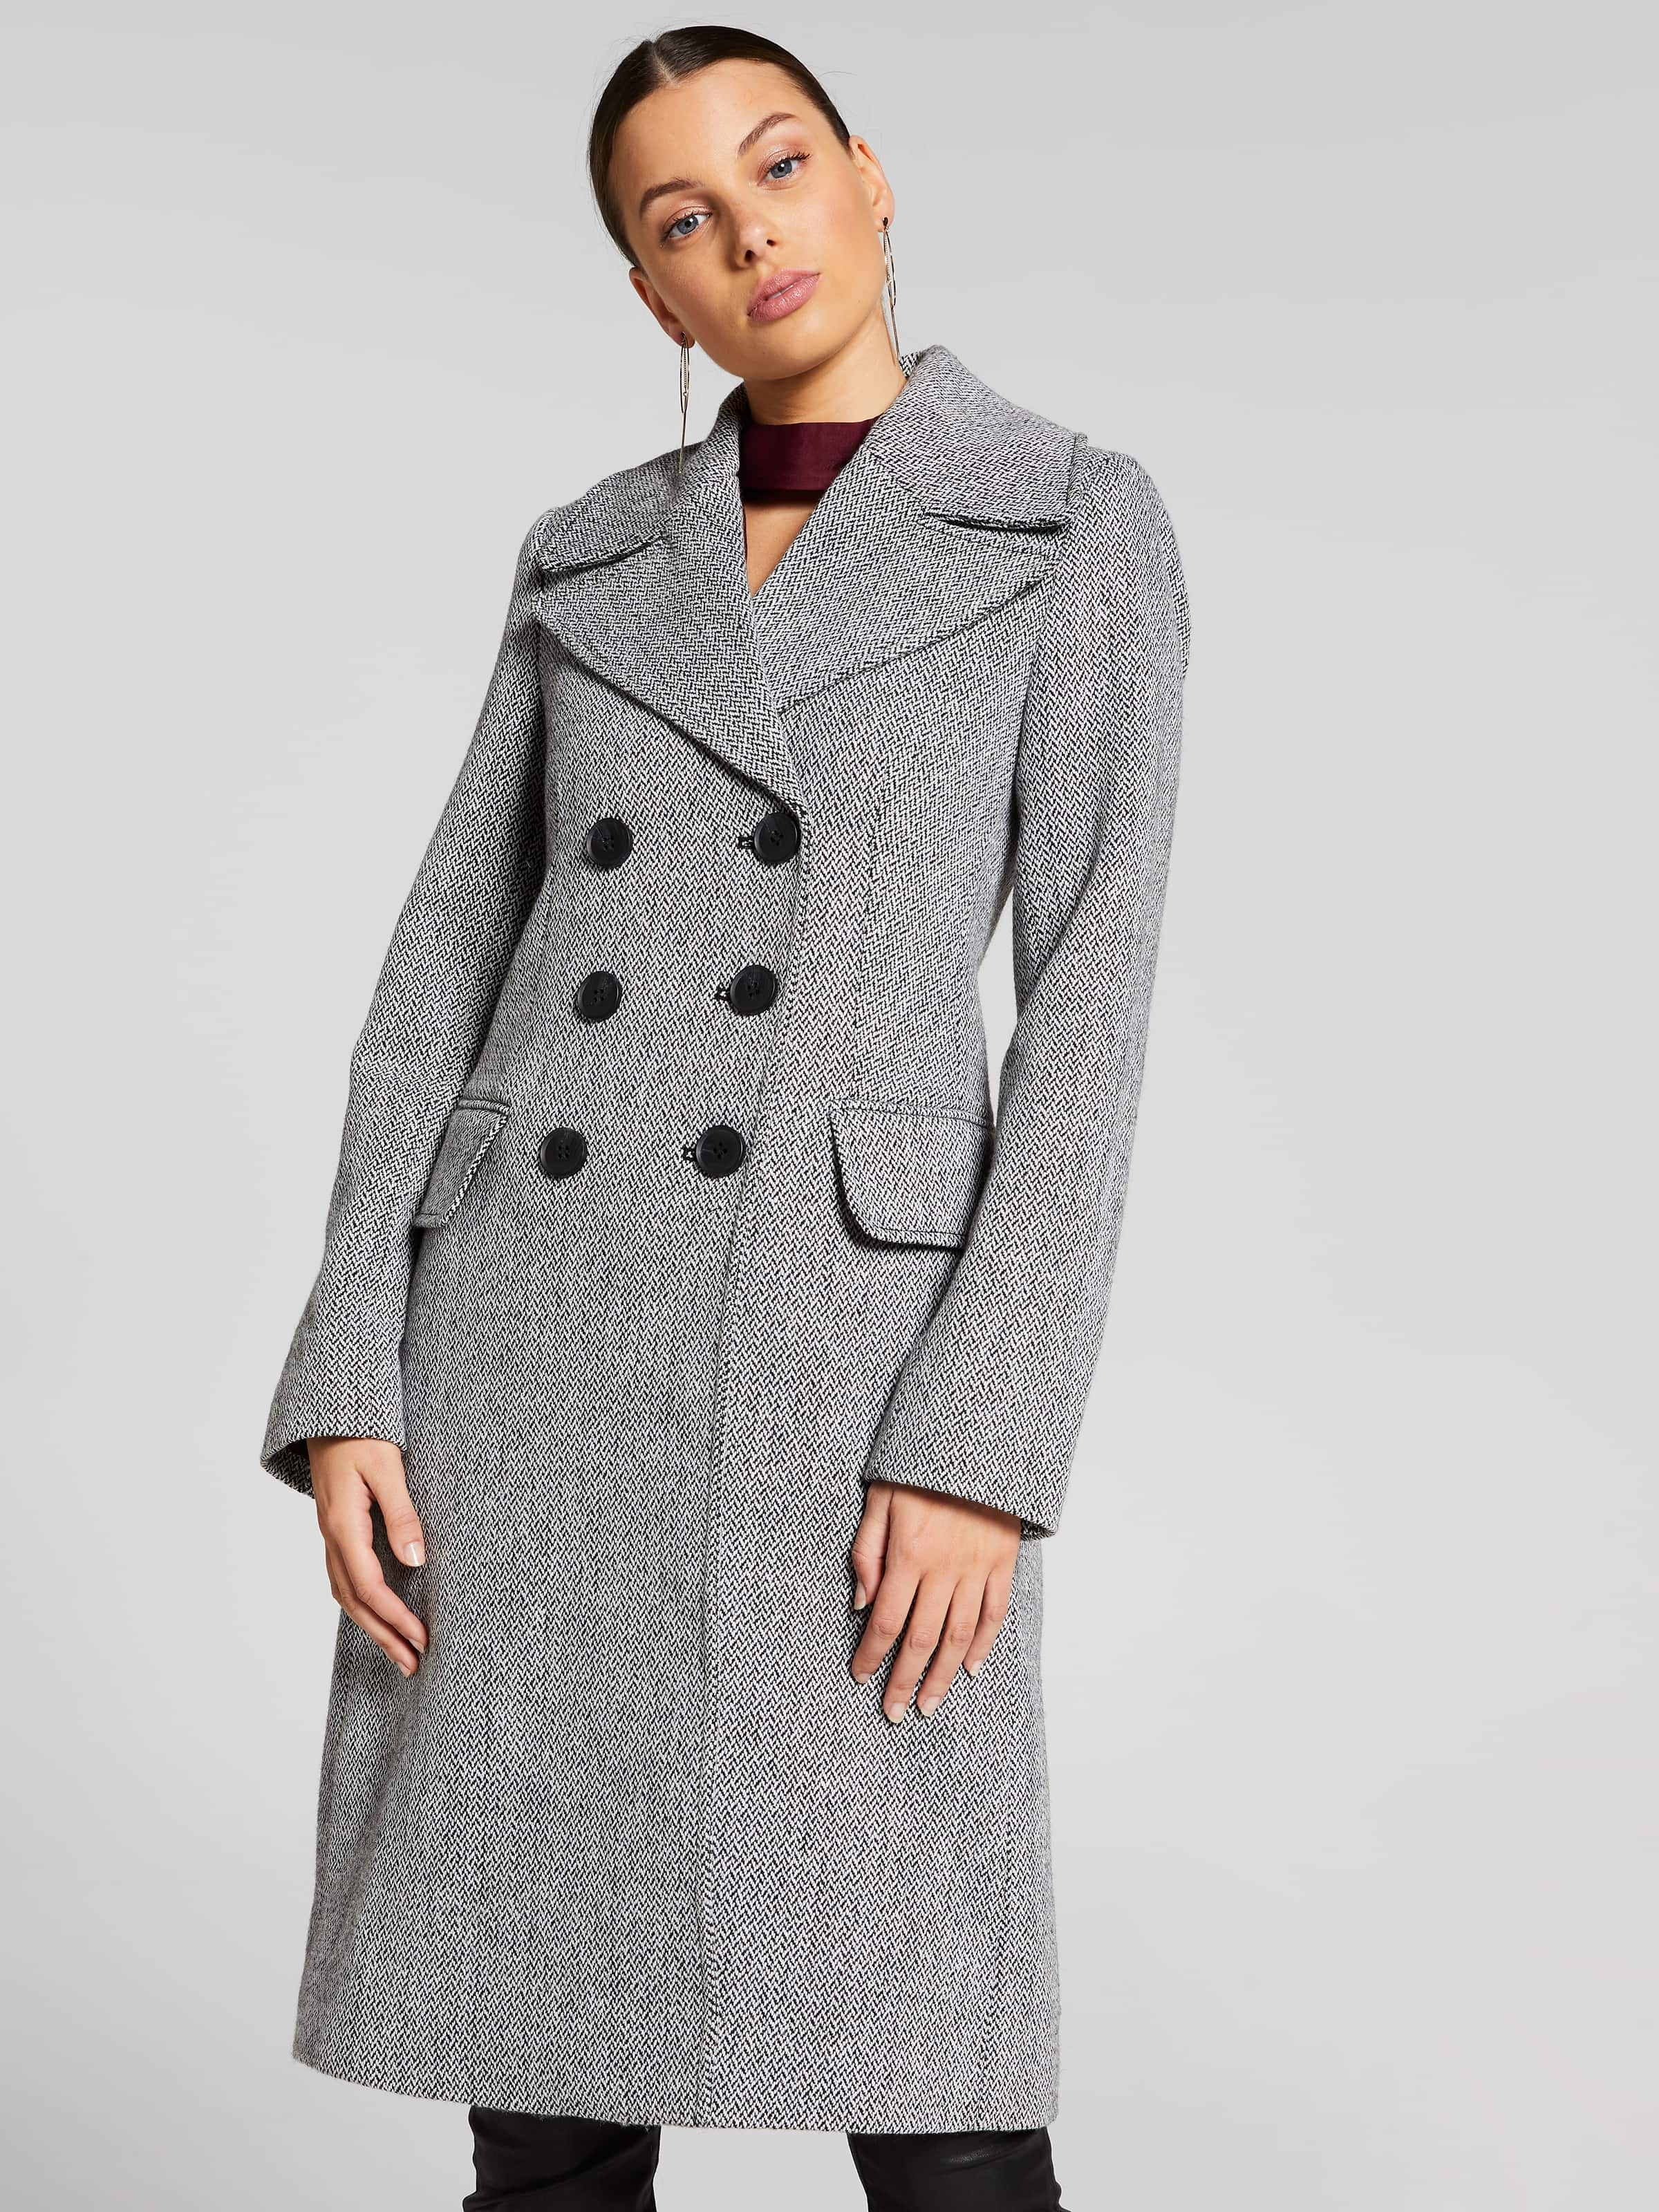 Image of Portmans Australia Portmans Atlantic Herringbone Coat